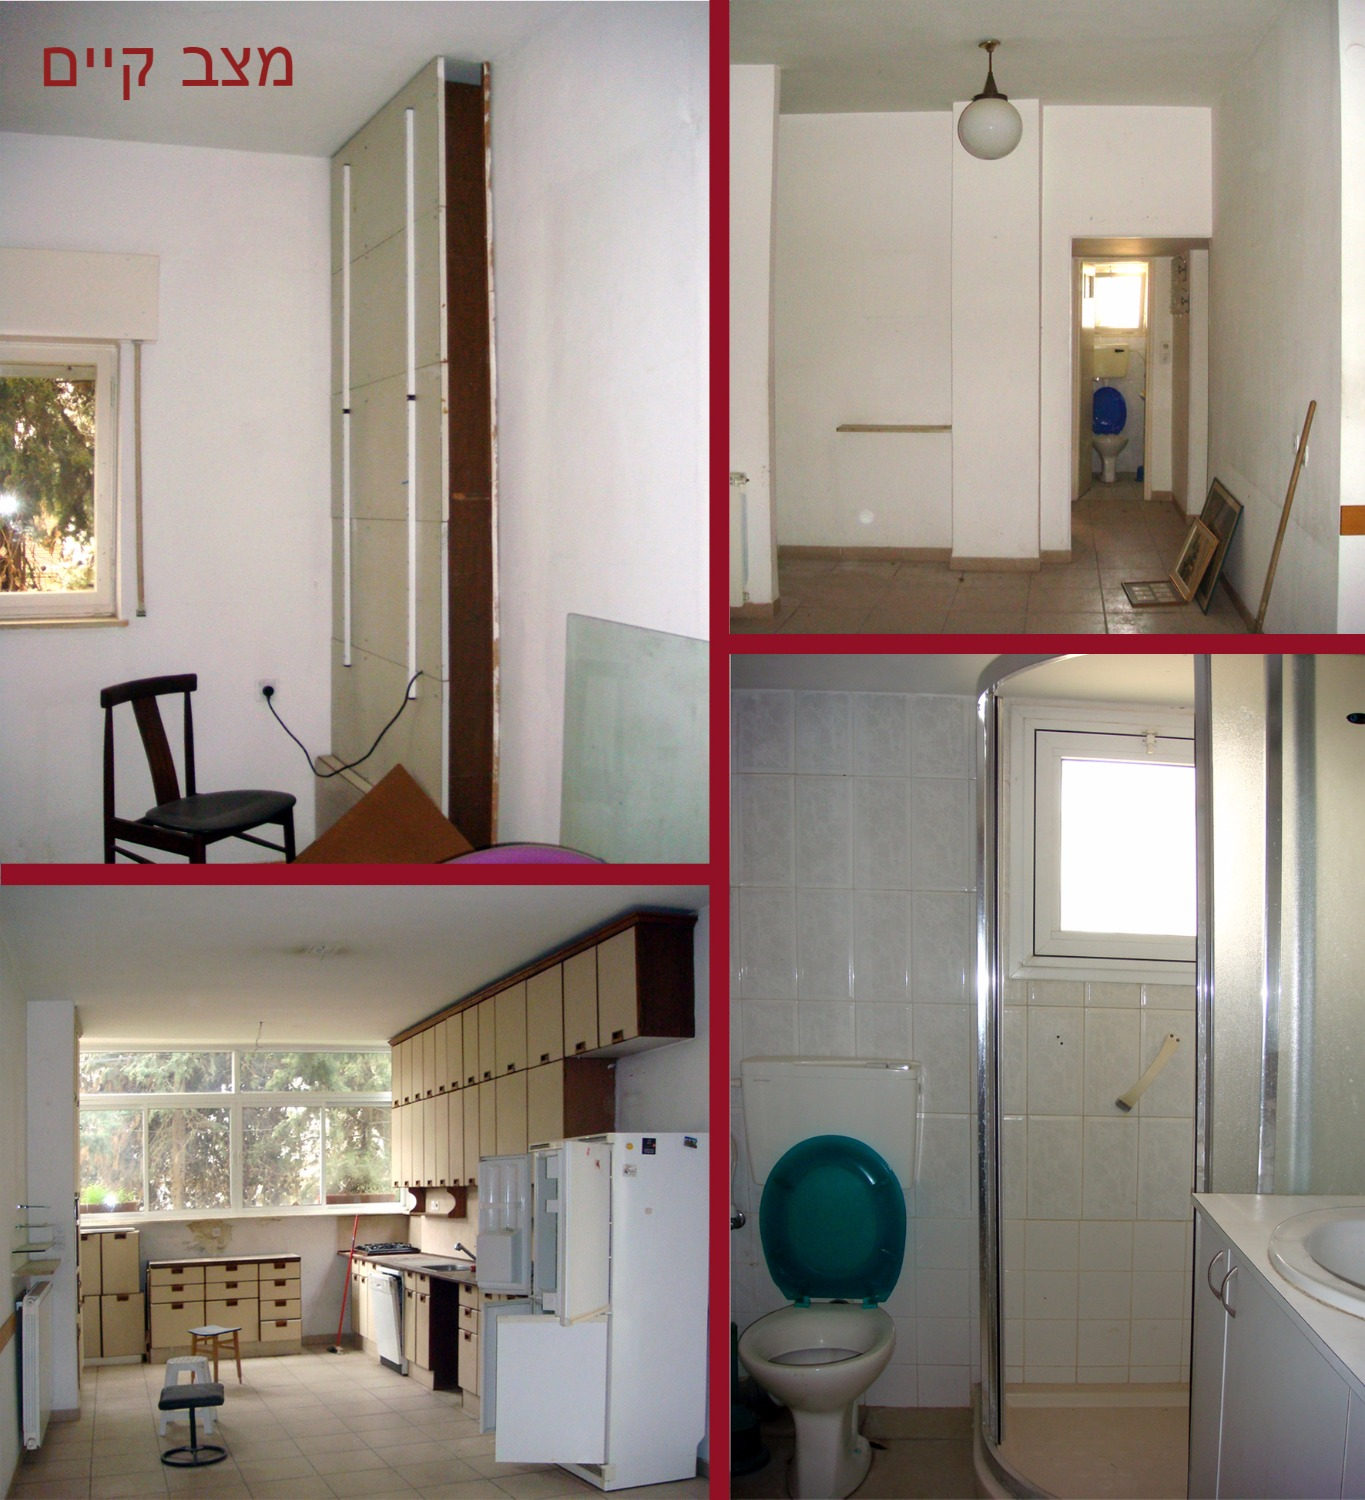 Renovation in Israel